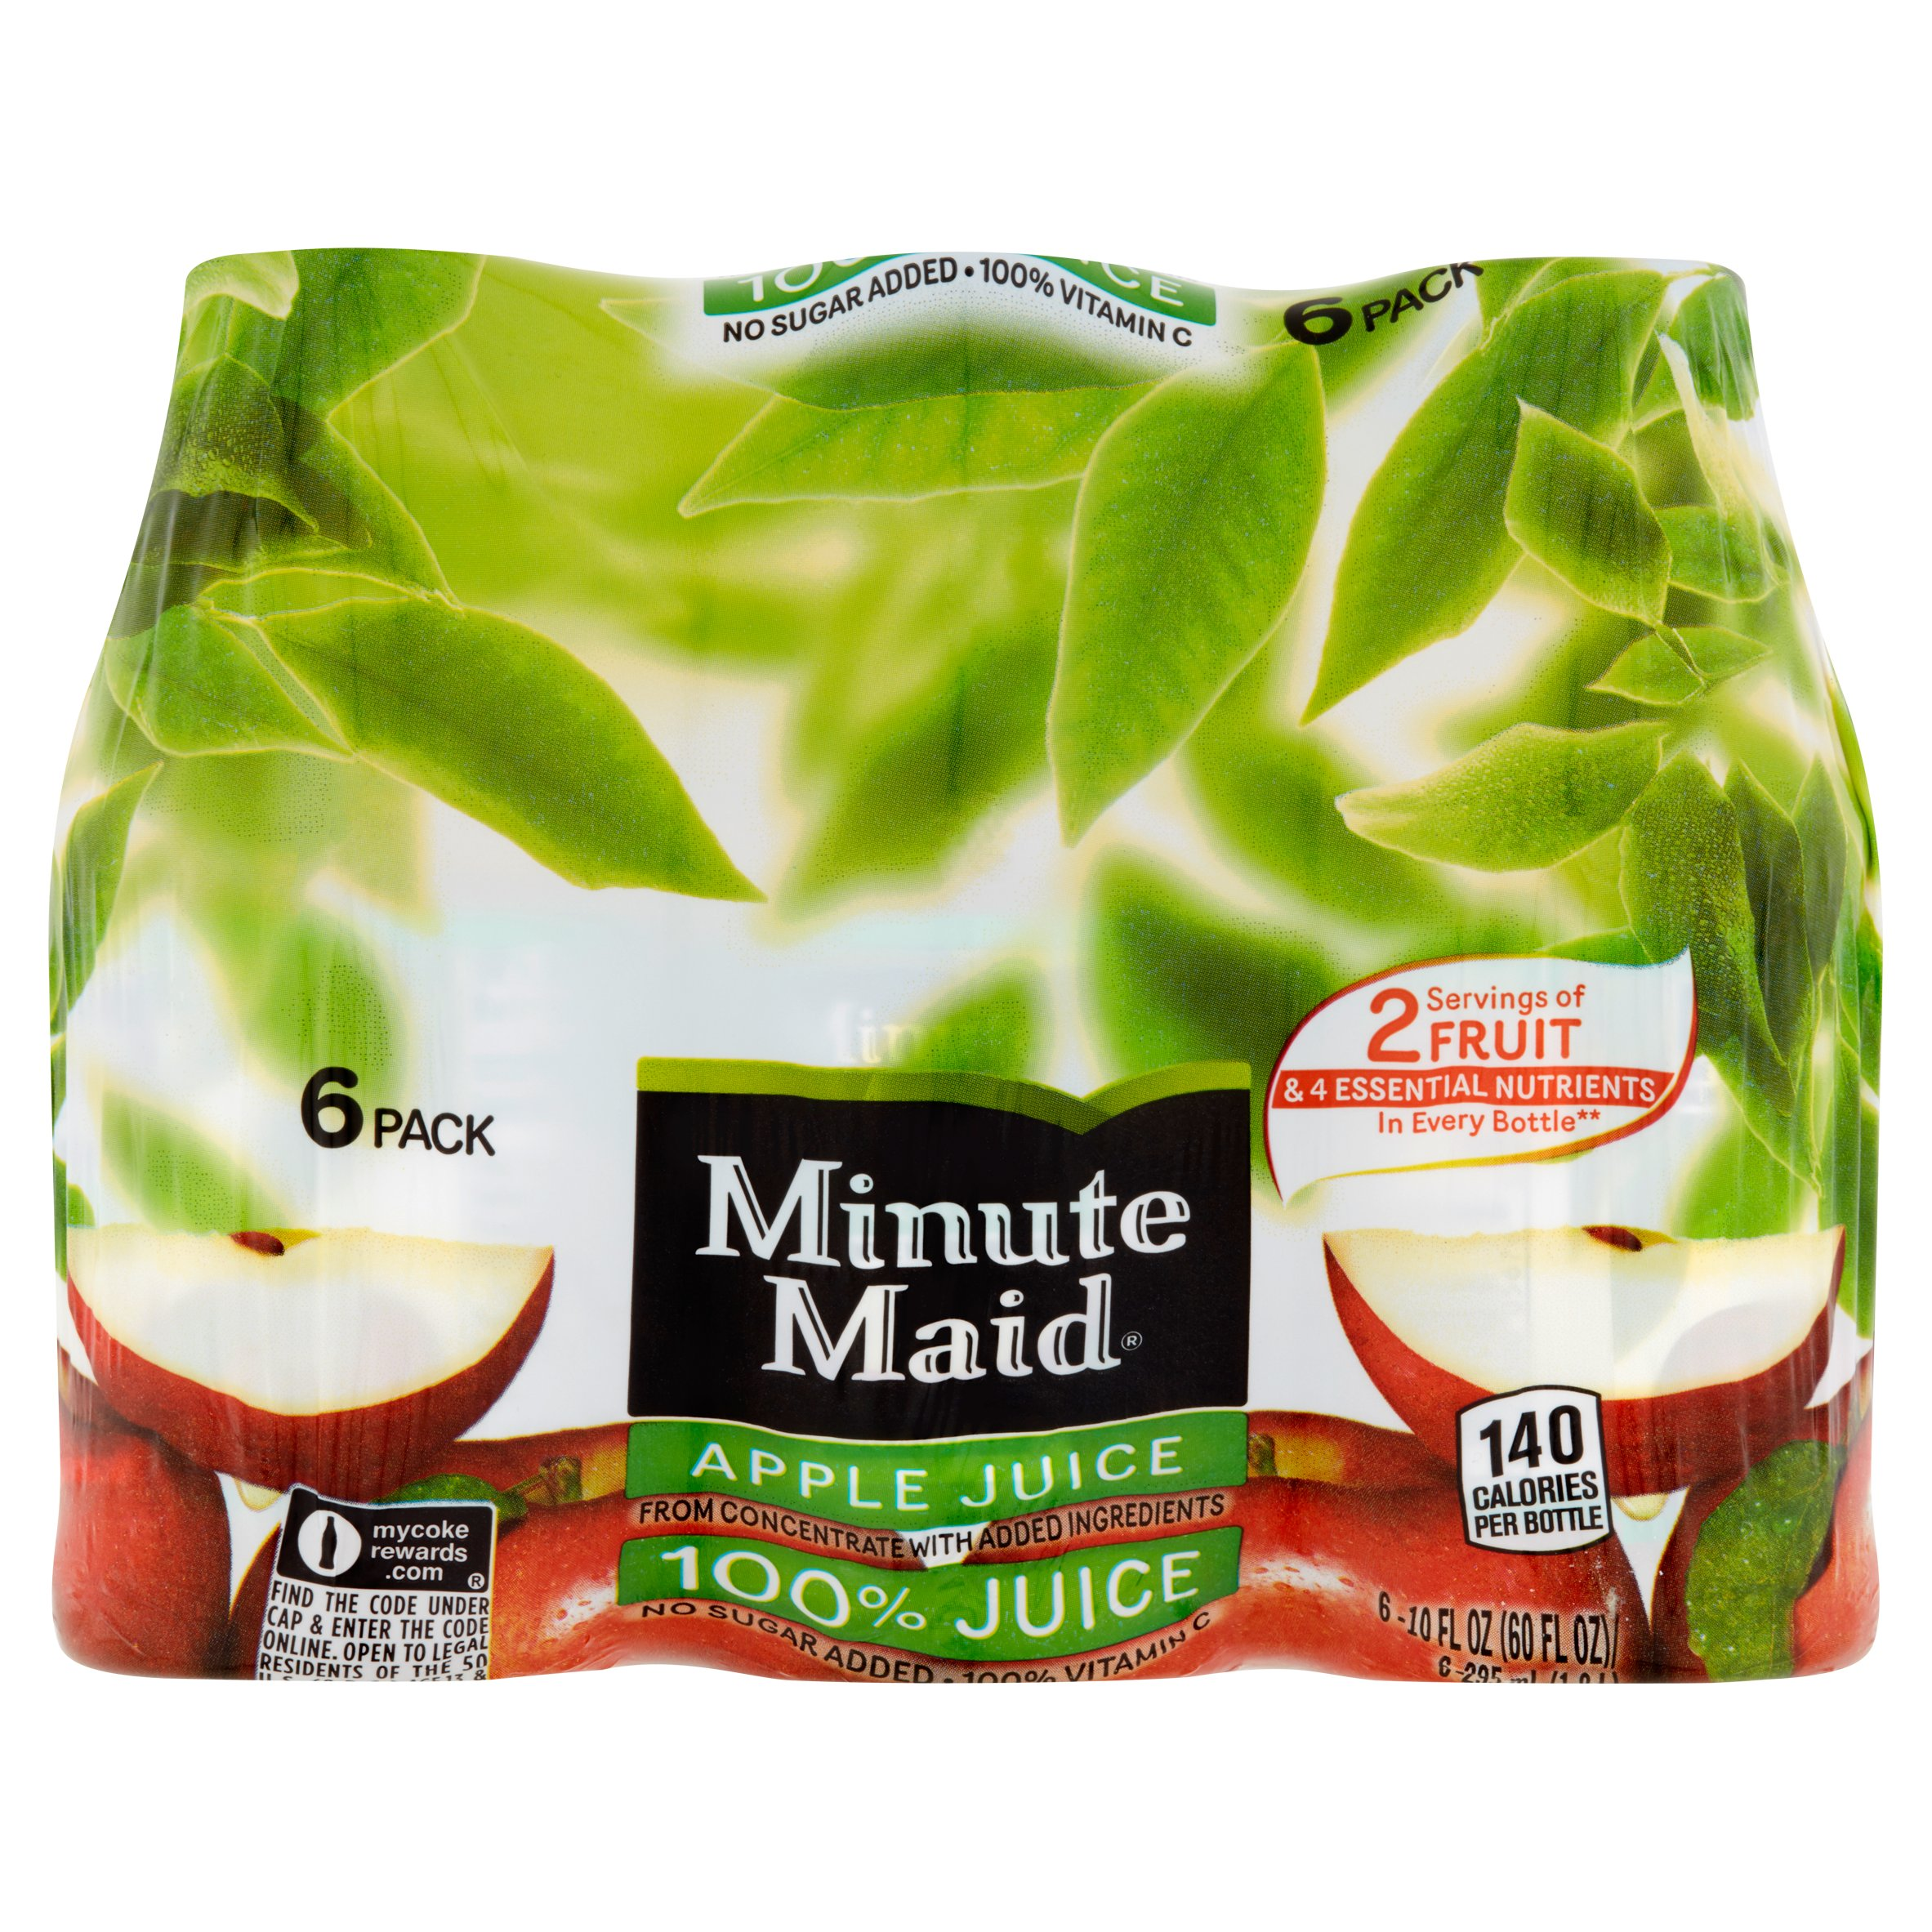 Minute Maid Juices To Go 100% Apple Juice, 6pk by The Coca-Cola Company